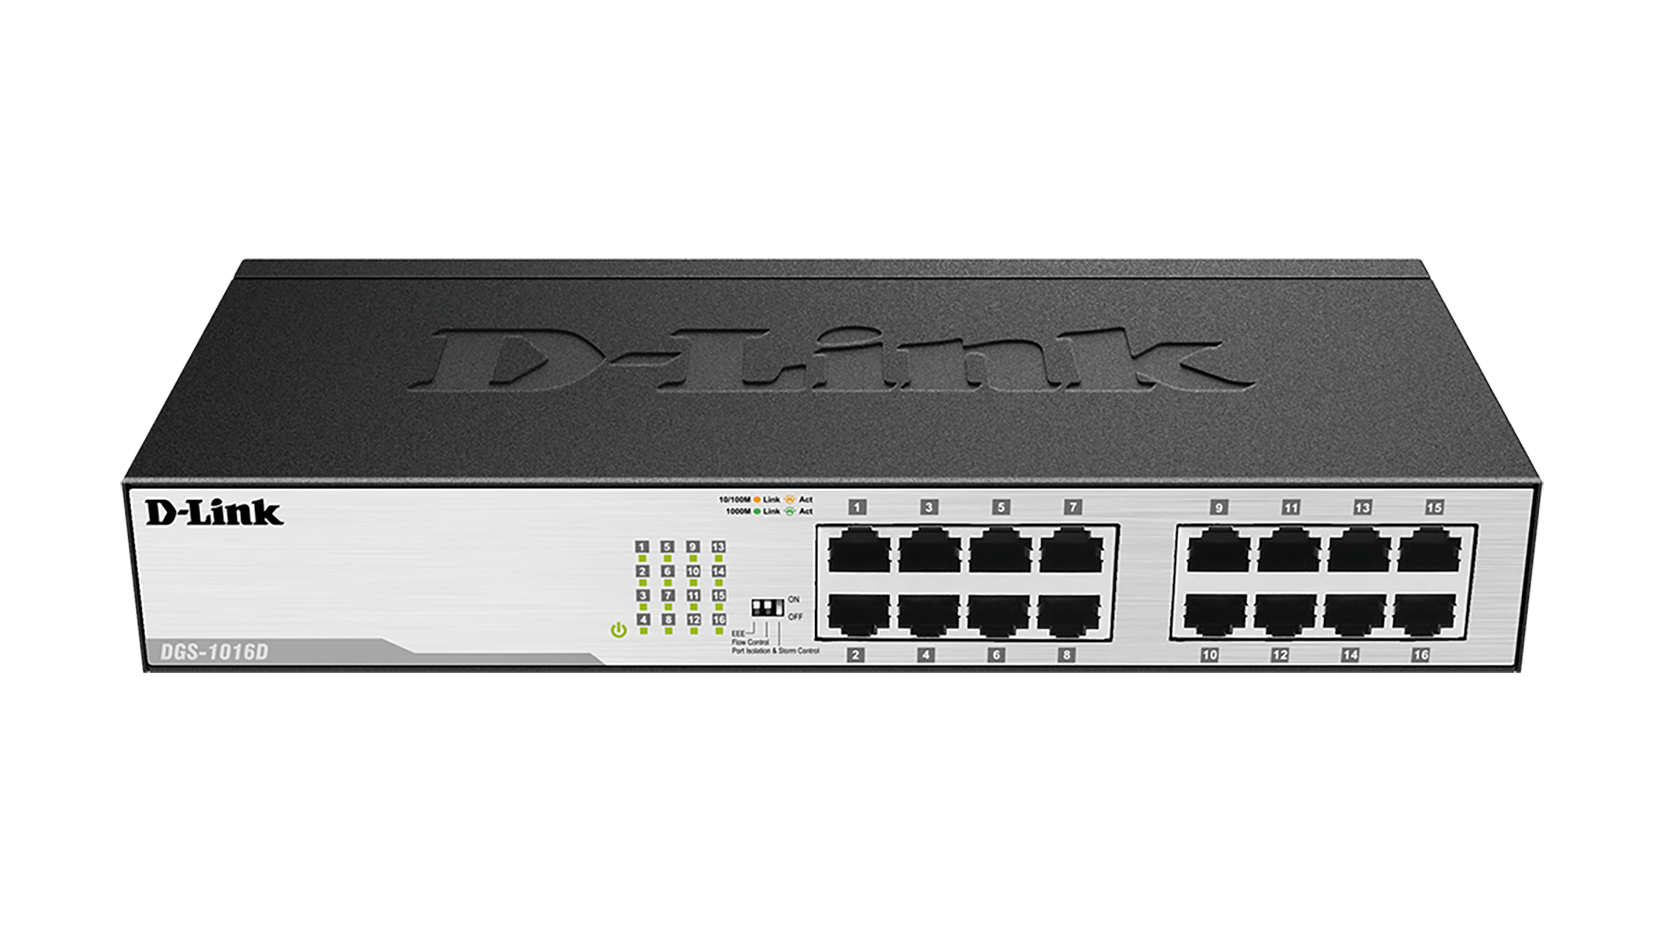 D-Link DGS-1016D switch No administrado Gigabit Ethernet (10/100/1000) Negro, Plata 1U